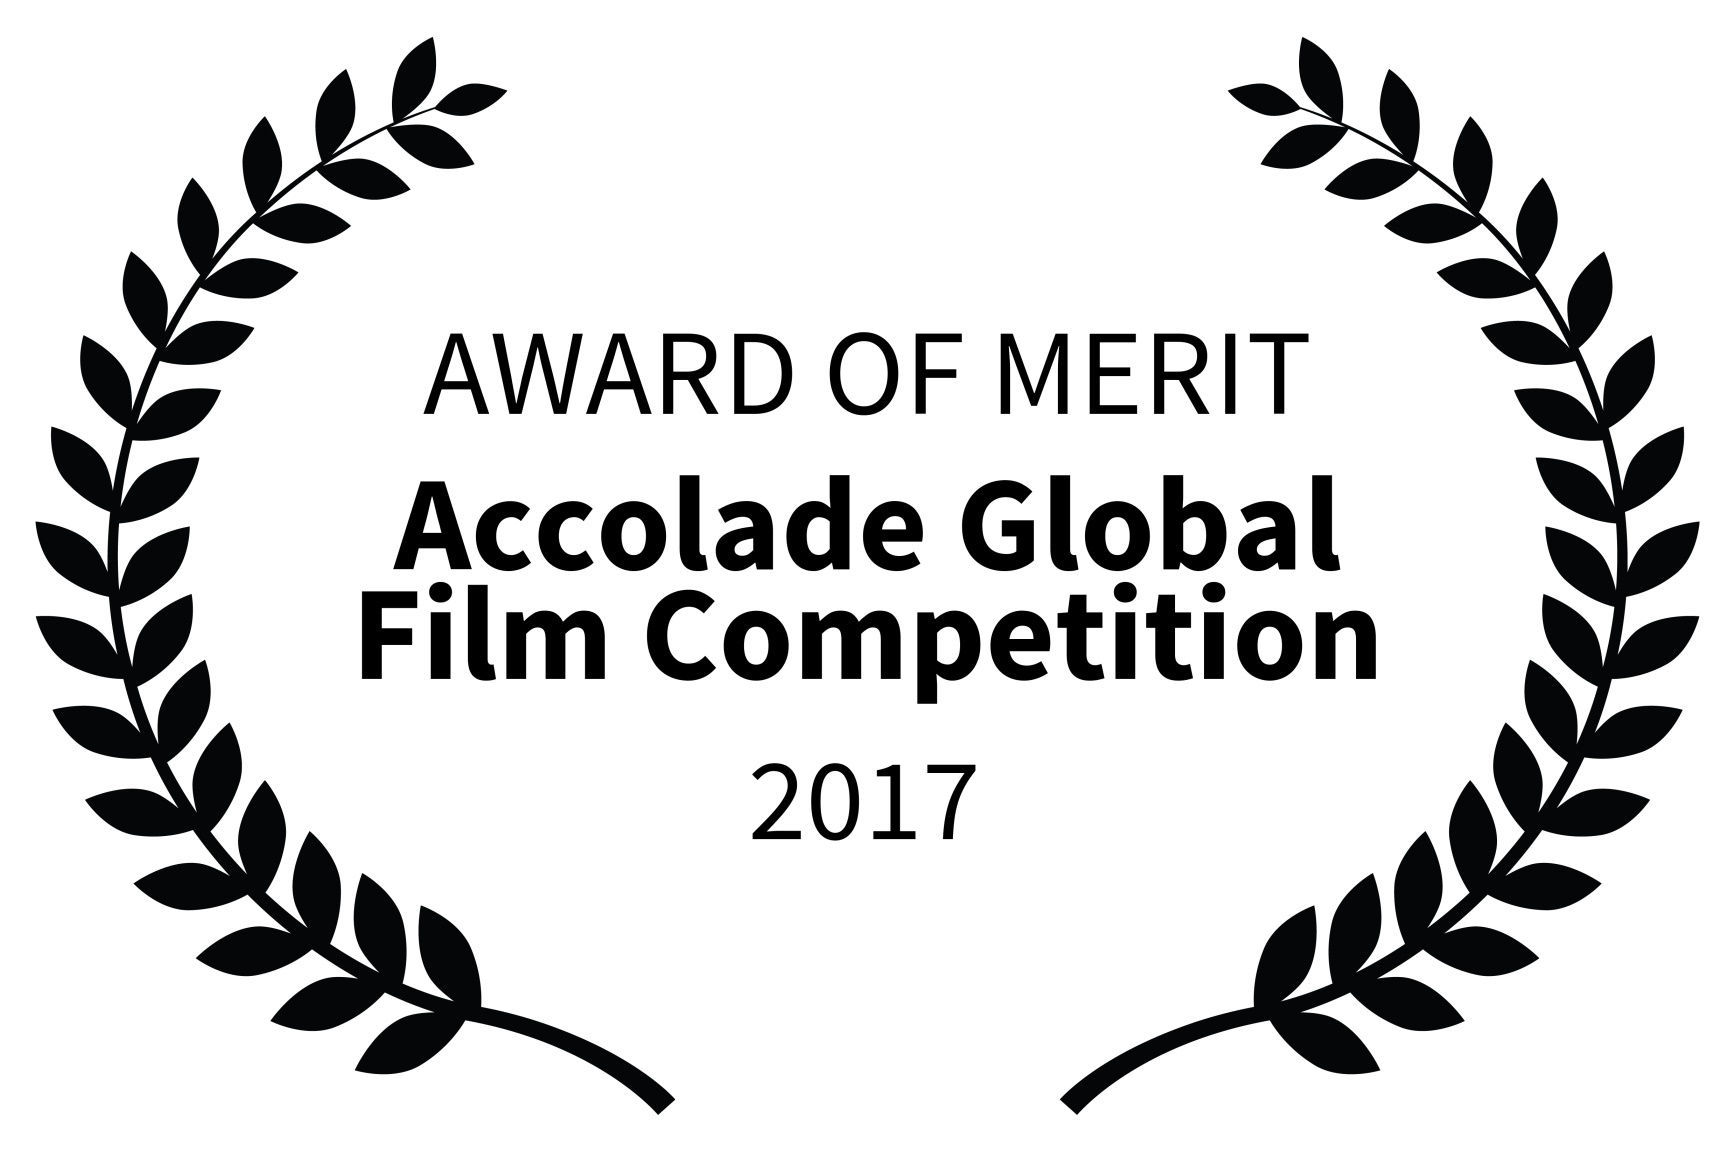 AWARD_OF_MERIT_-_Accolade_Global_Film_Competition_-_2017